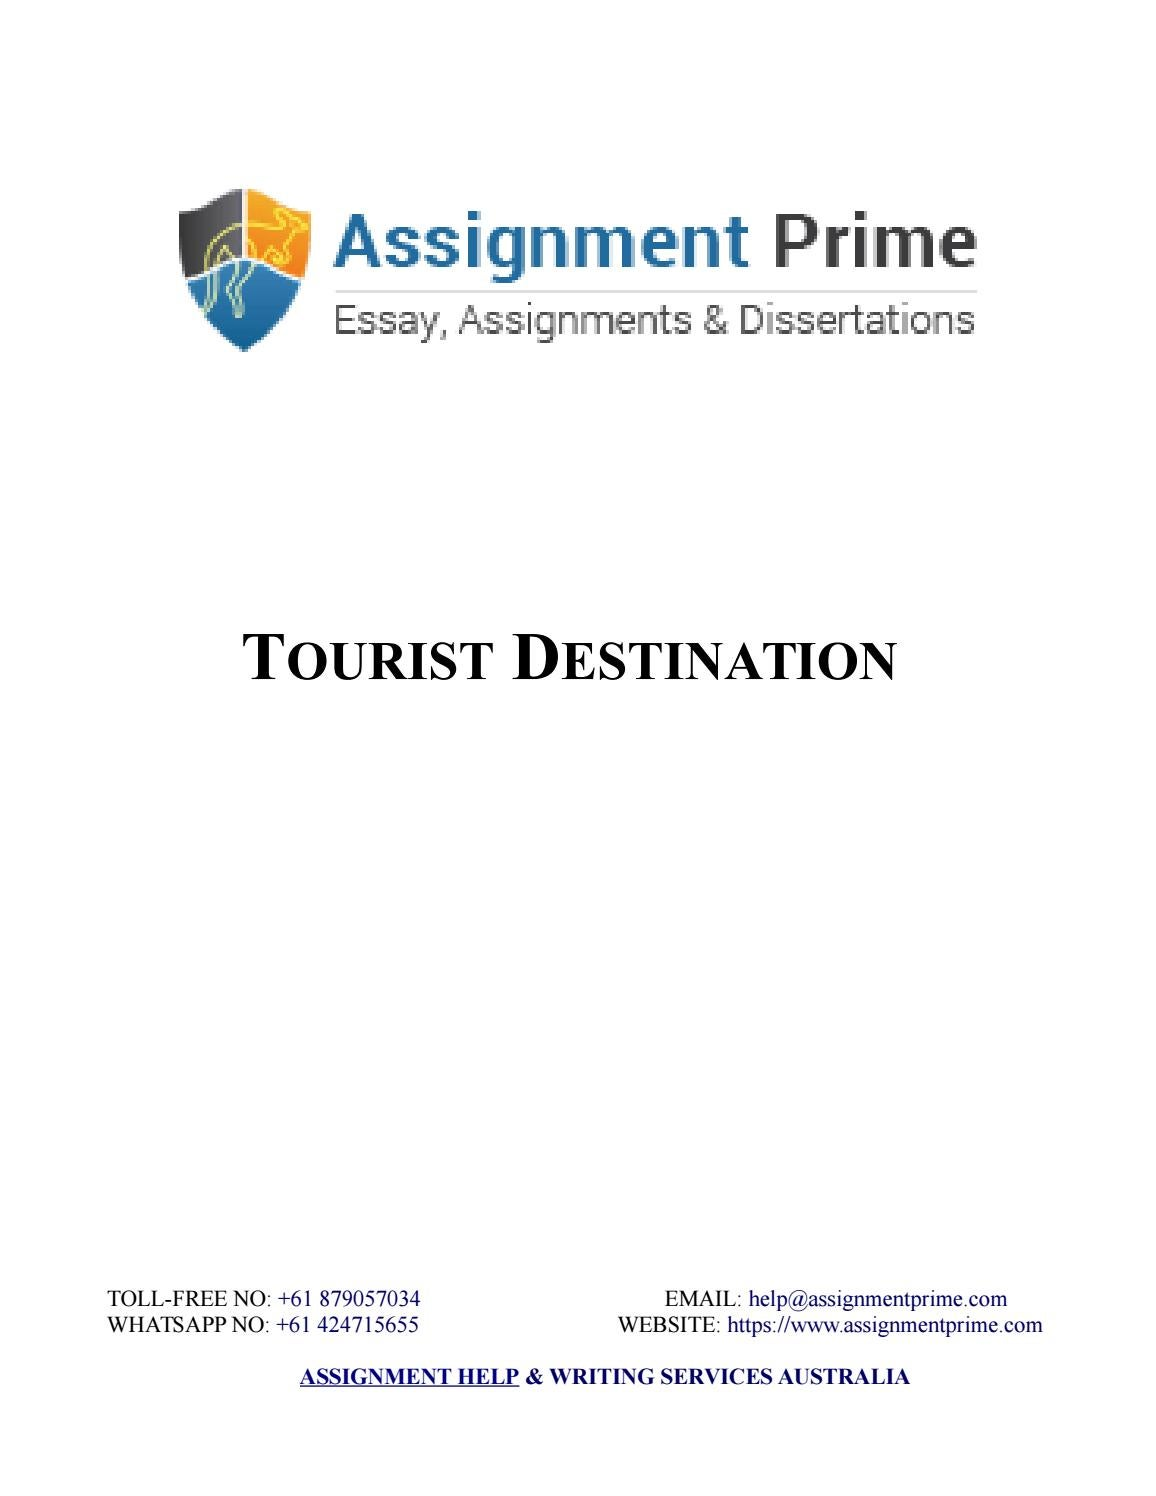 sample assignment on tourist destination assignment prime sample assignment on tourist destination assignment prime by adam jackson issuu